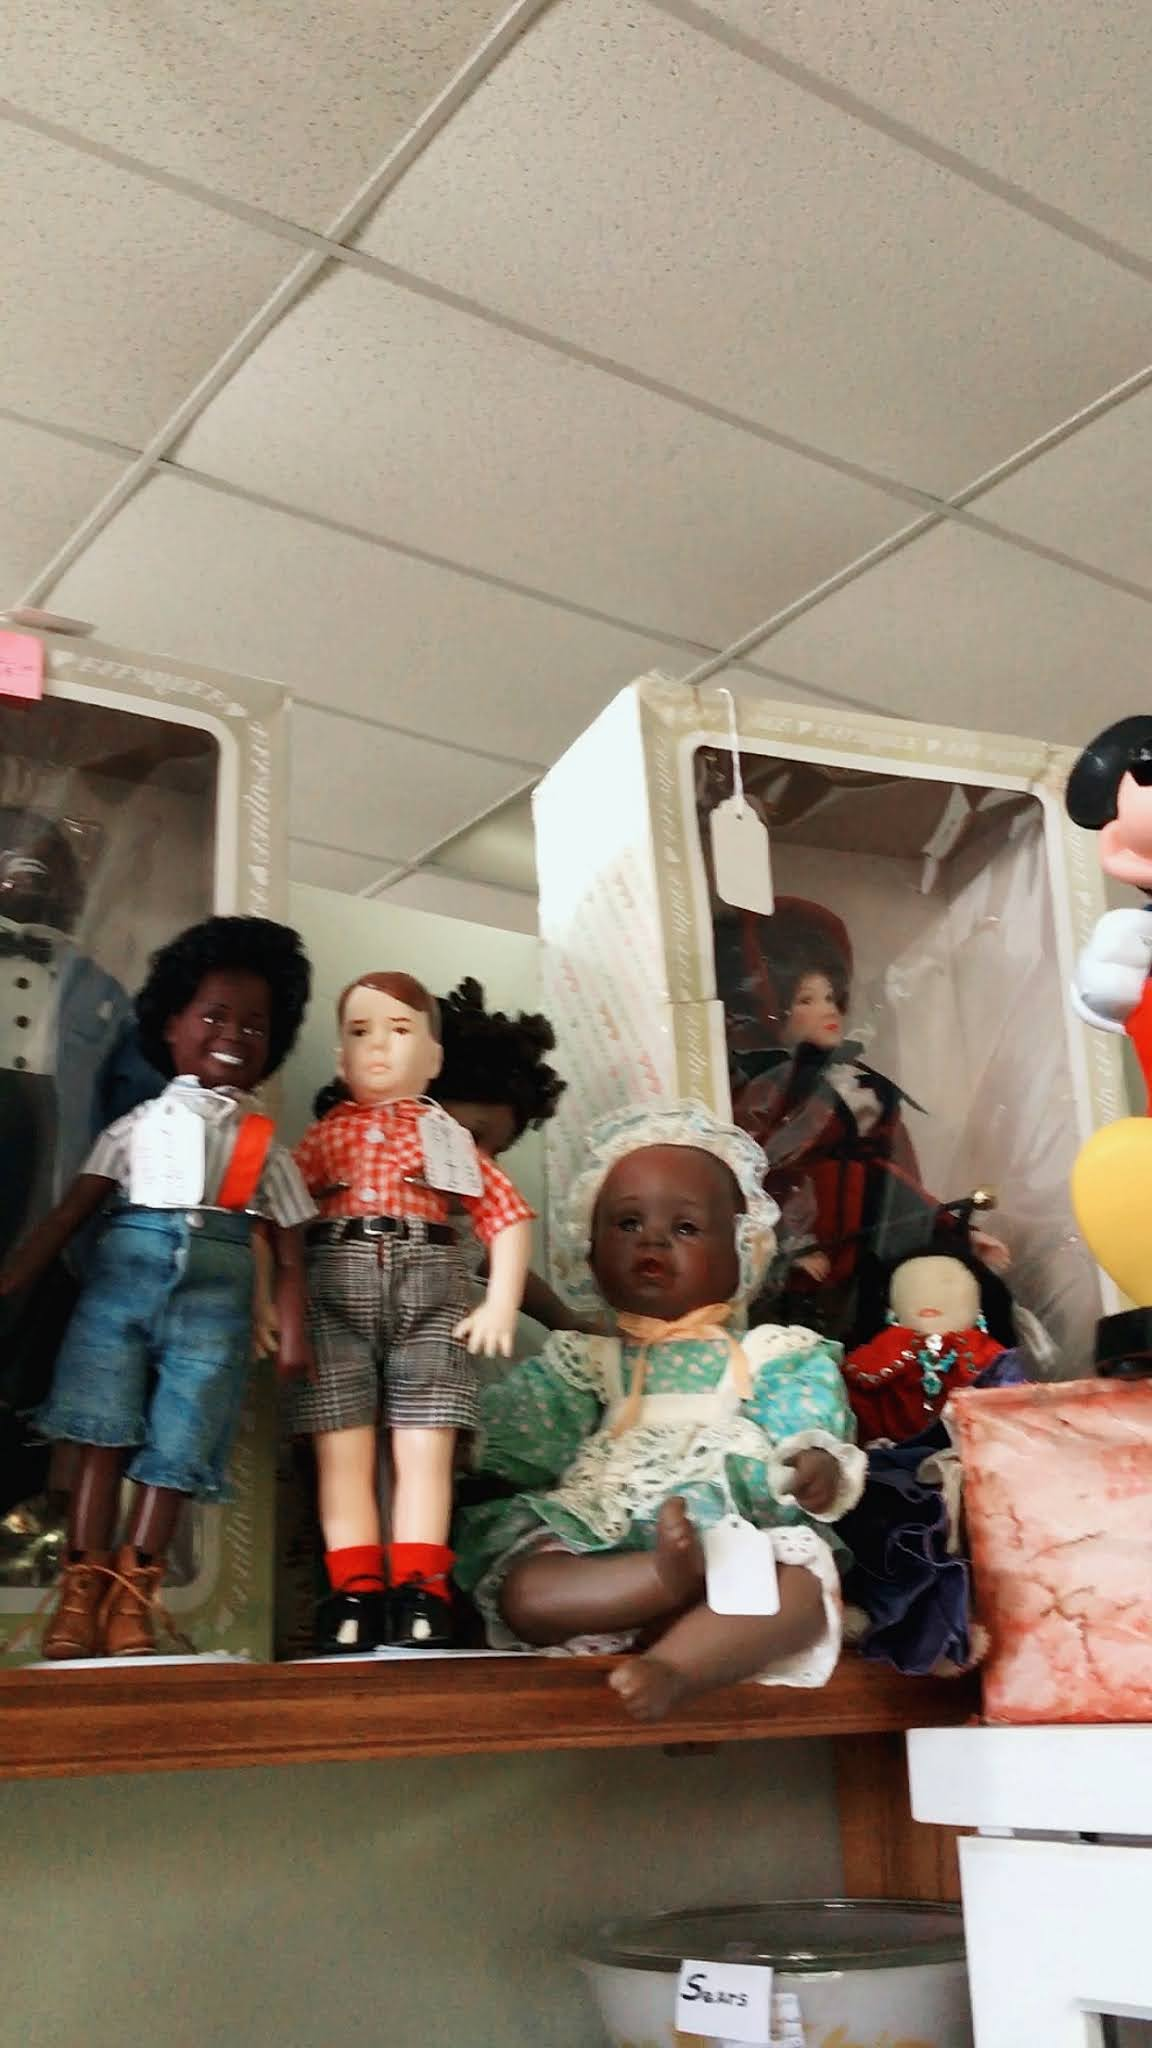 All About Those Quirky Finds: MADTV, Tea Pots, And Dolls!